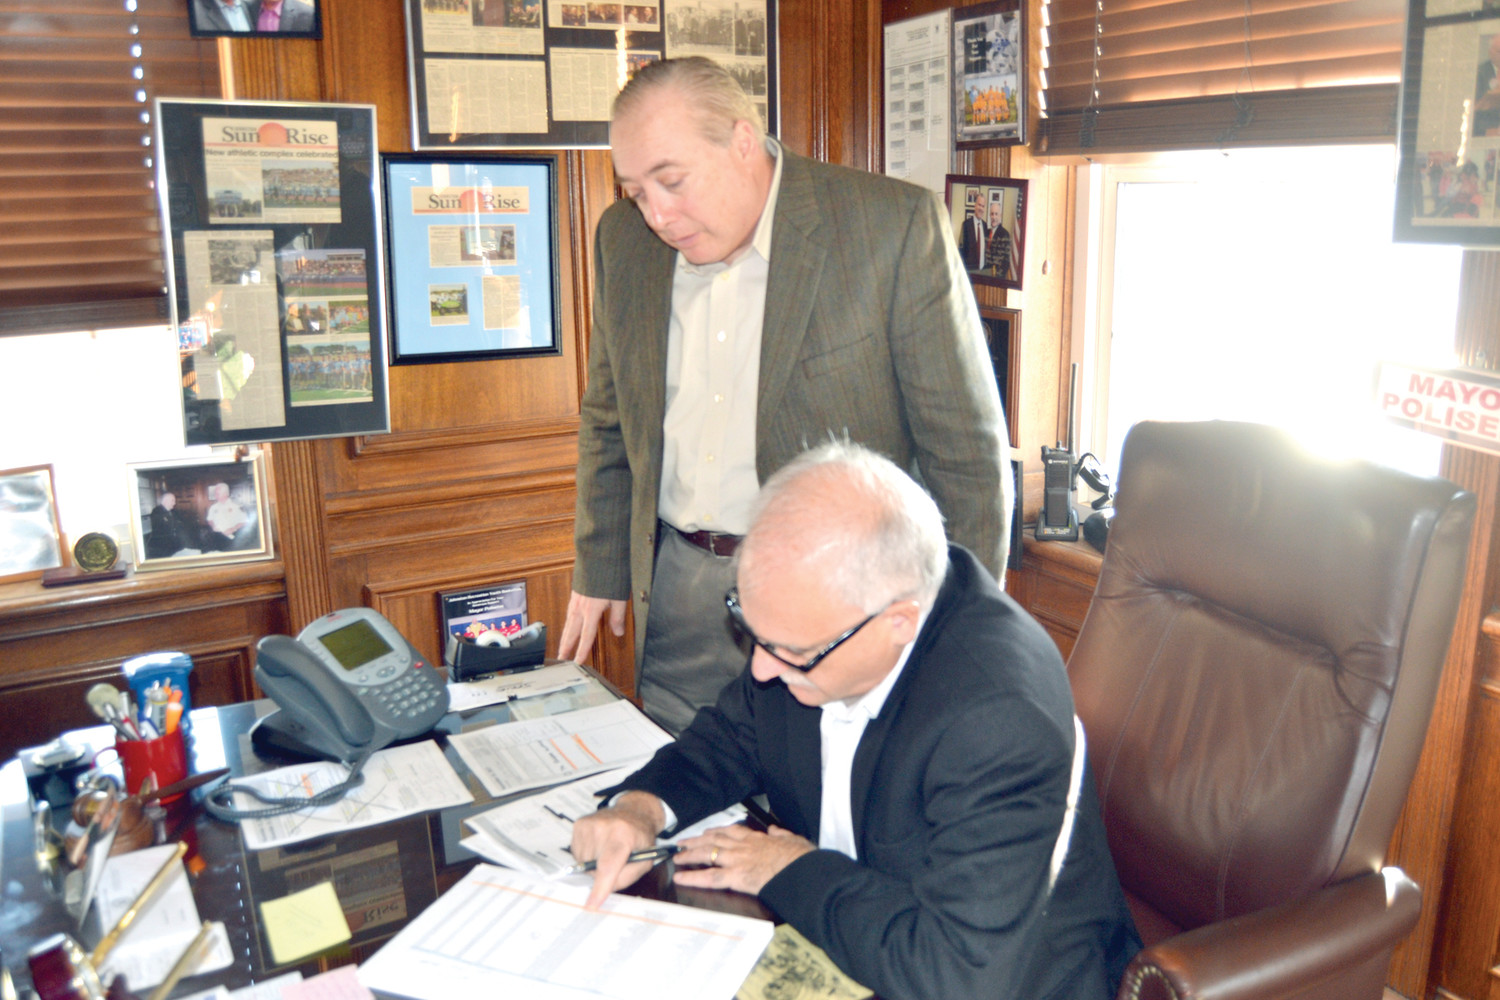 THE TAXMAN COMETH: Mayor Joseph Polisena and Johnston Finance Director Joseph Chiodo review the list of outstanding car taxes owed to the town.